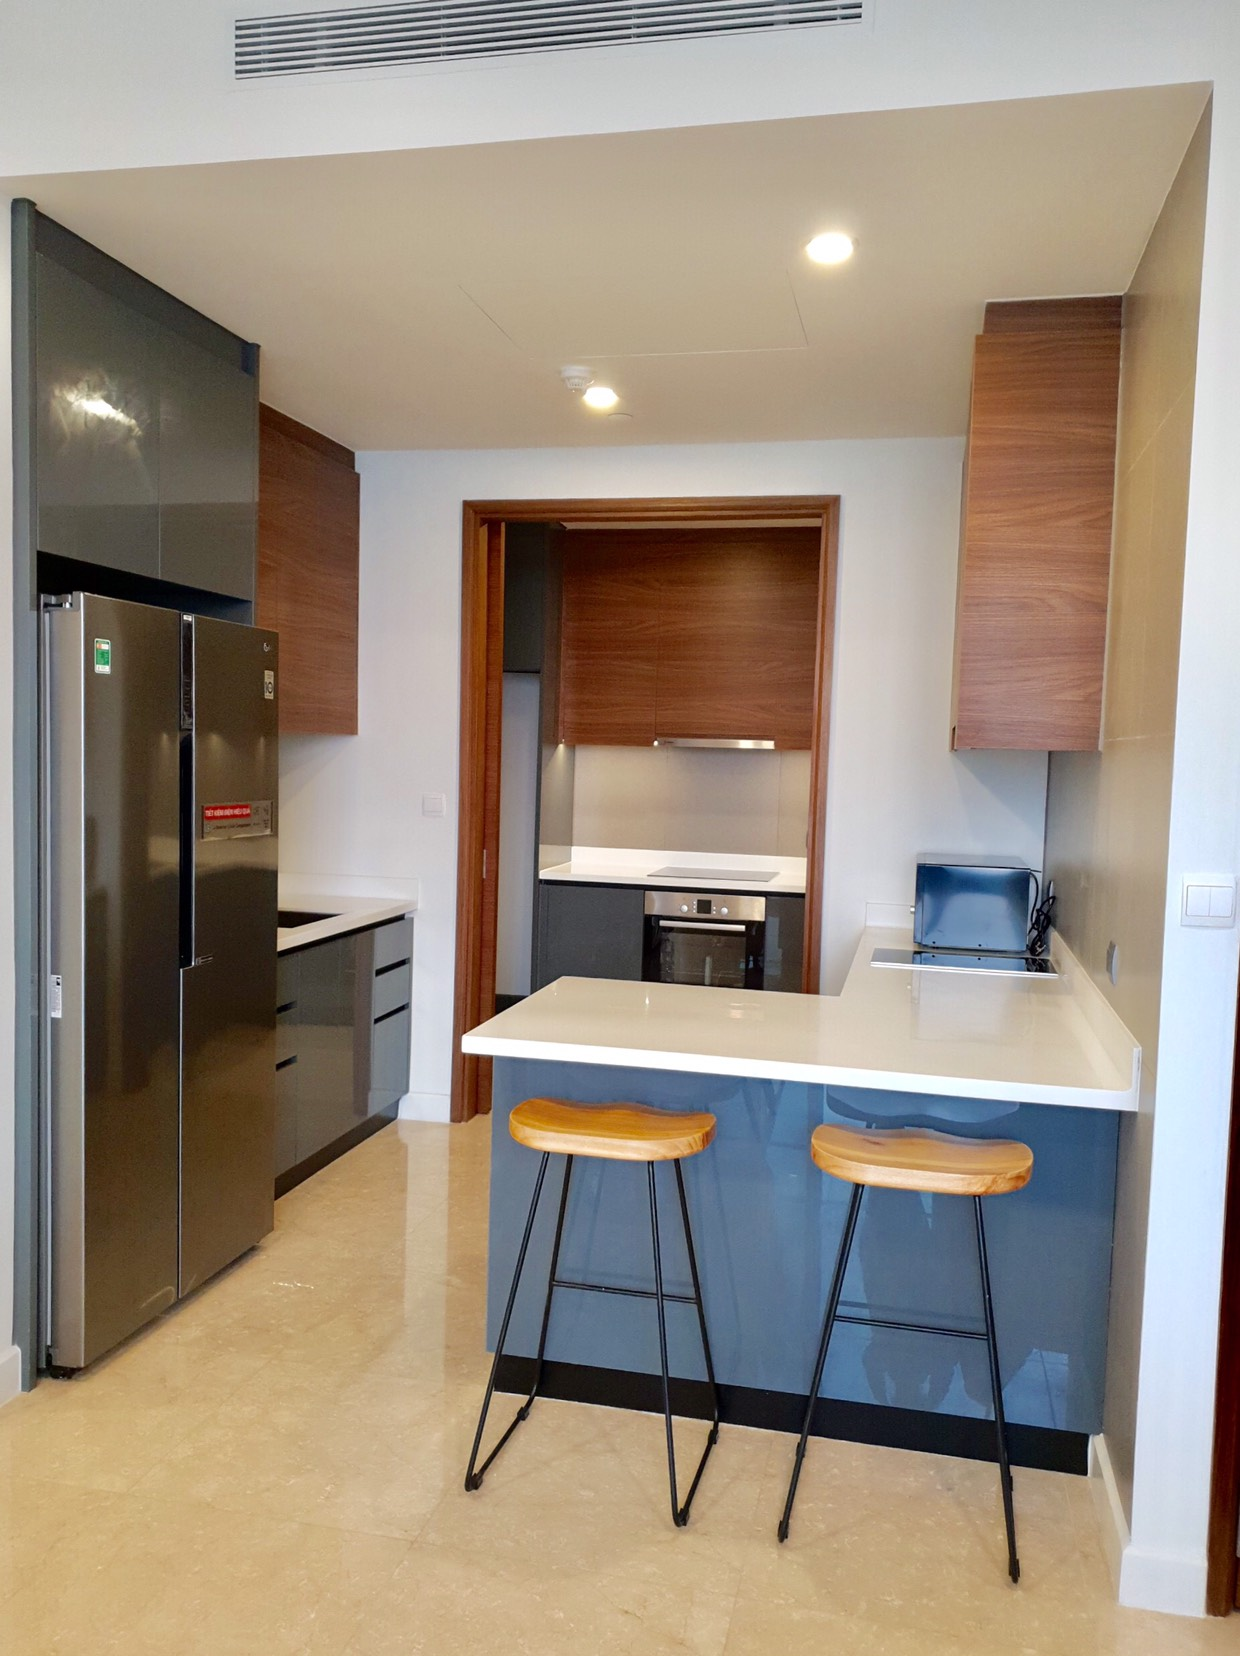 Apartment for rent D223175 (5)